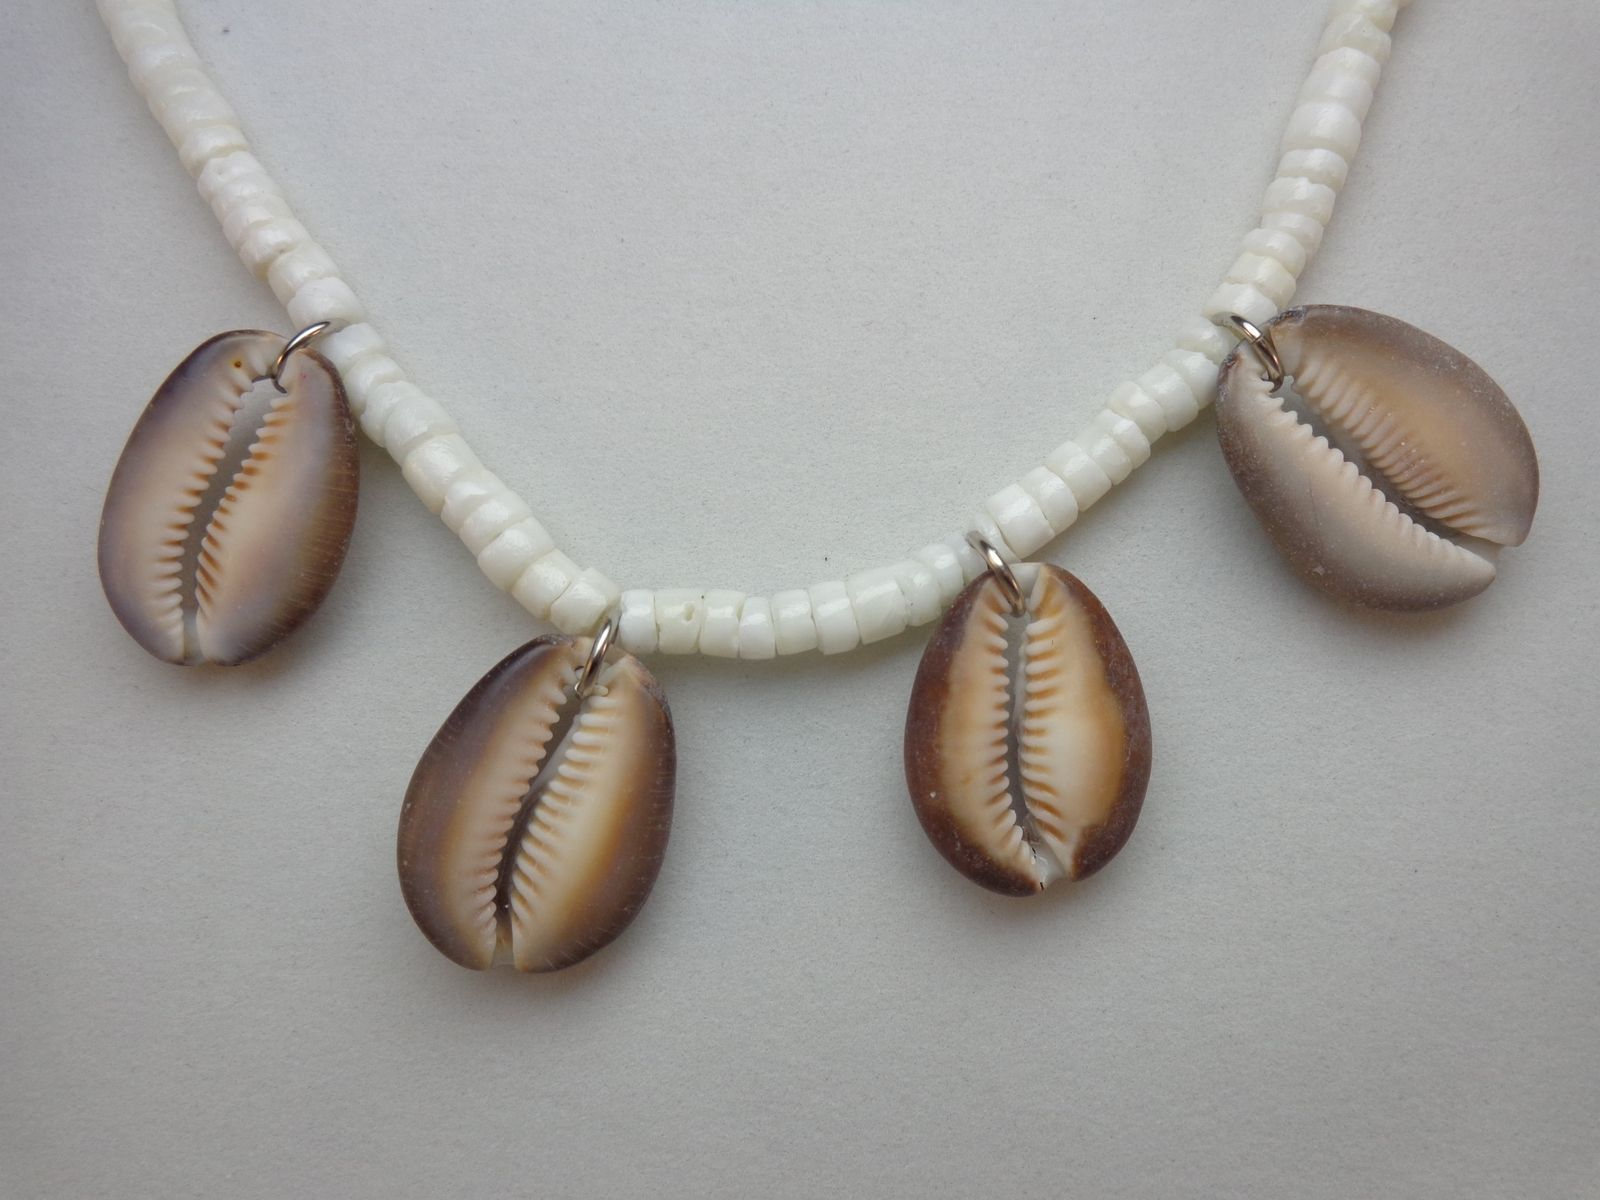 Hand Crafted Cowrie Shell Necklace, Mens Or Womens Jewelry By